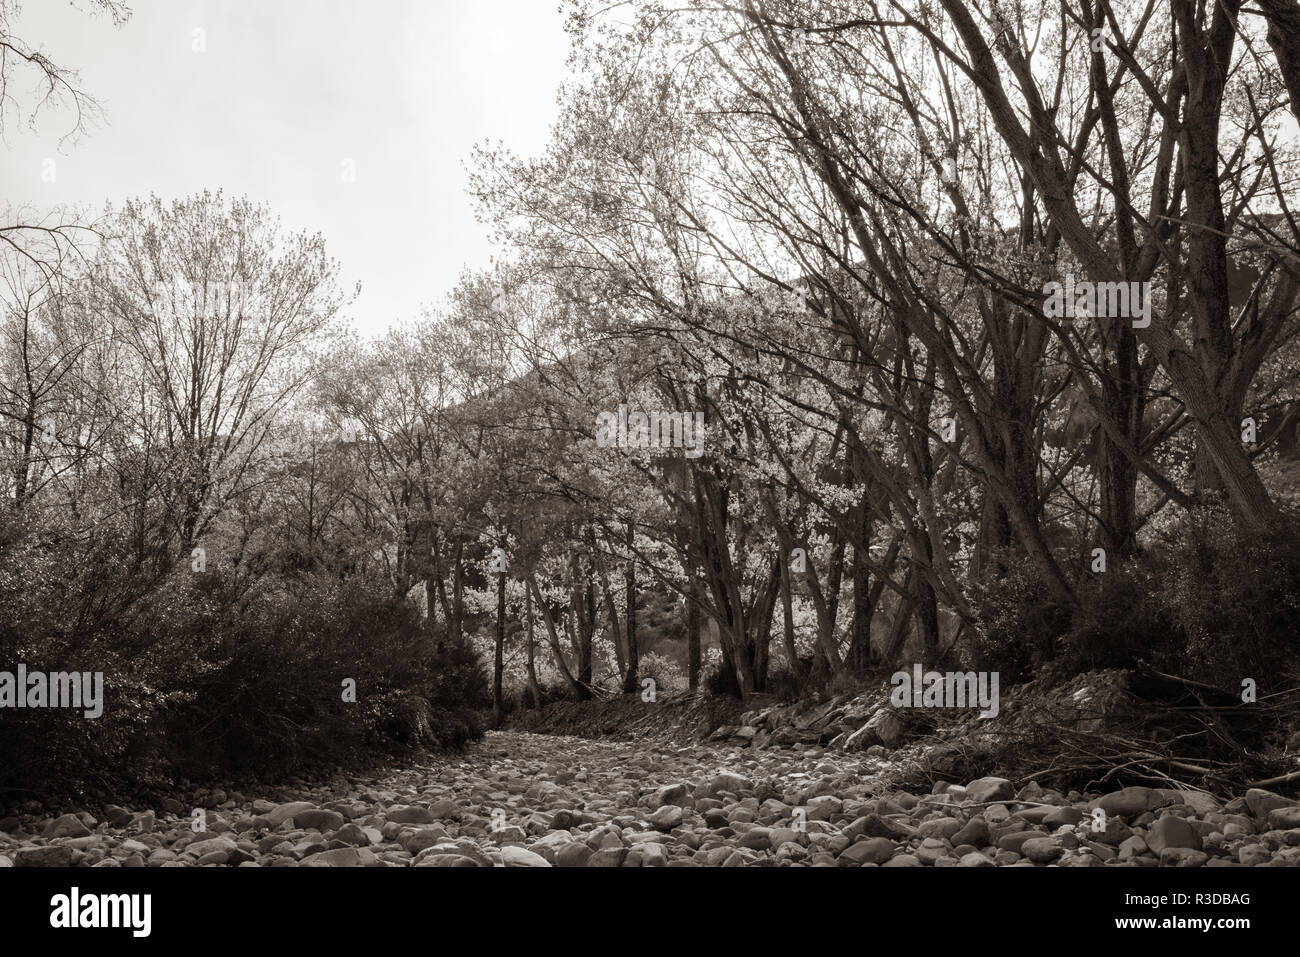 Trees in new spring growth lining dry river bed in sepia tones - Stock Image